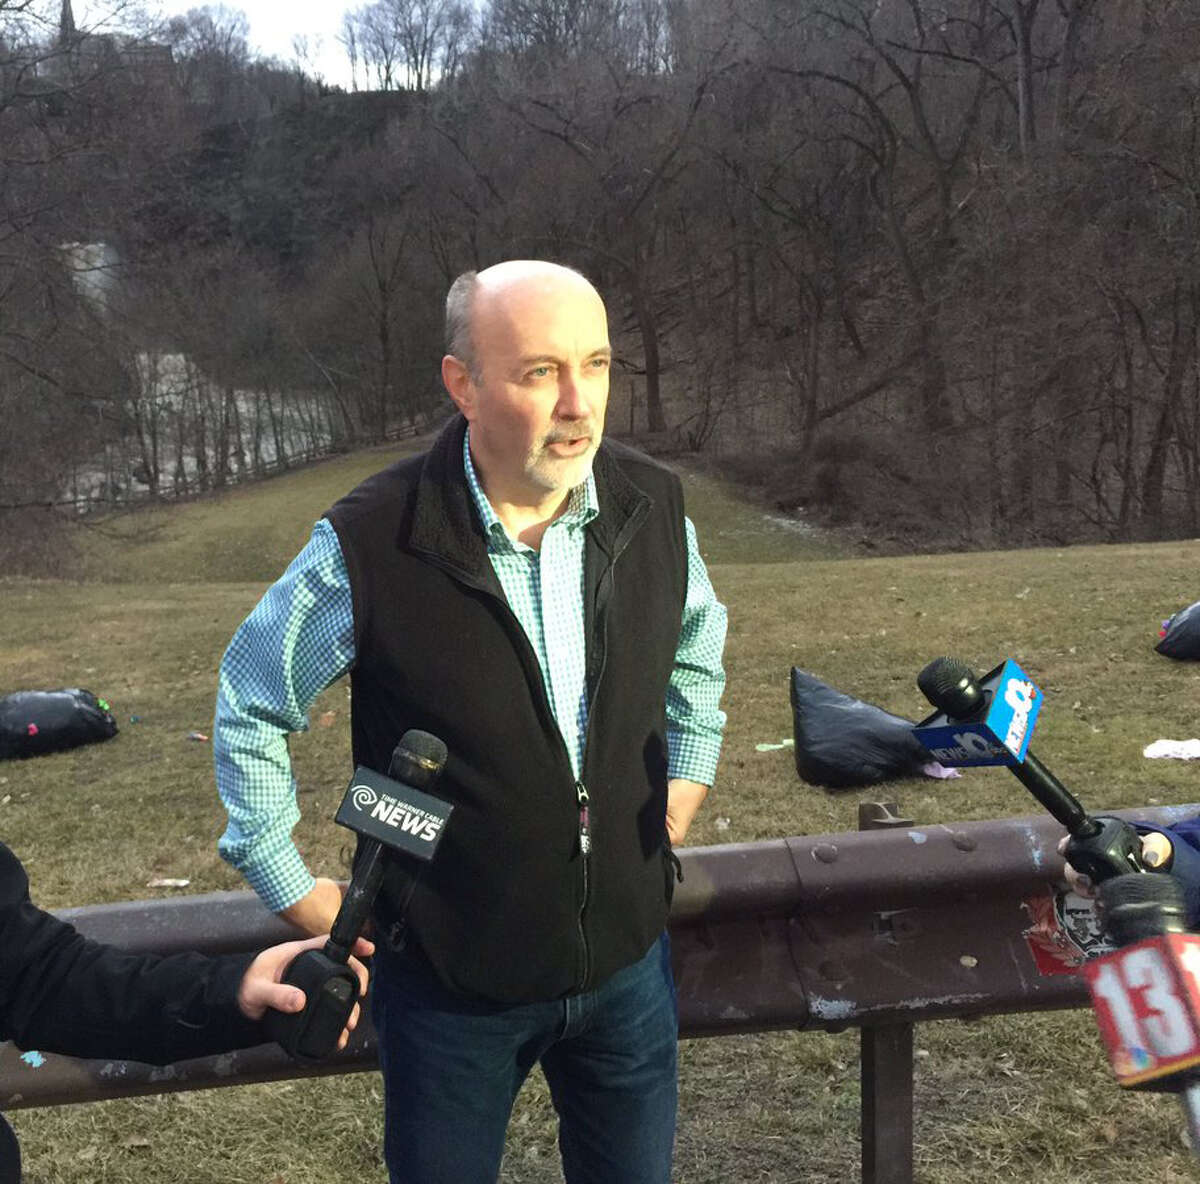 Troy Mayor Patrick Madden speaks to the press near the Poestenkill Gorge where witnesses reported a man fell into the water and did not resurface on Saturday, Feb. 25, 2017.